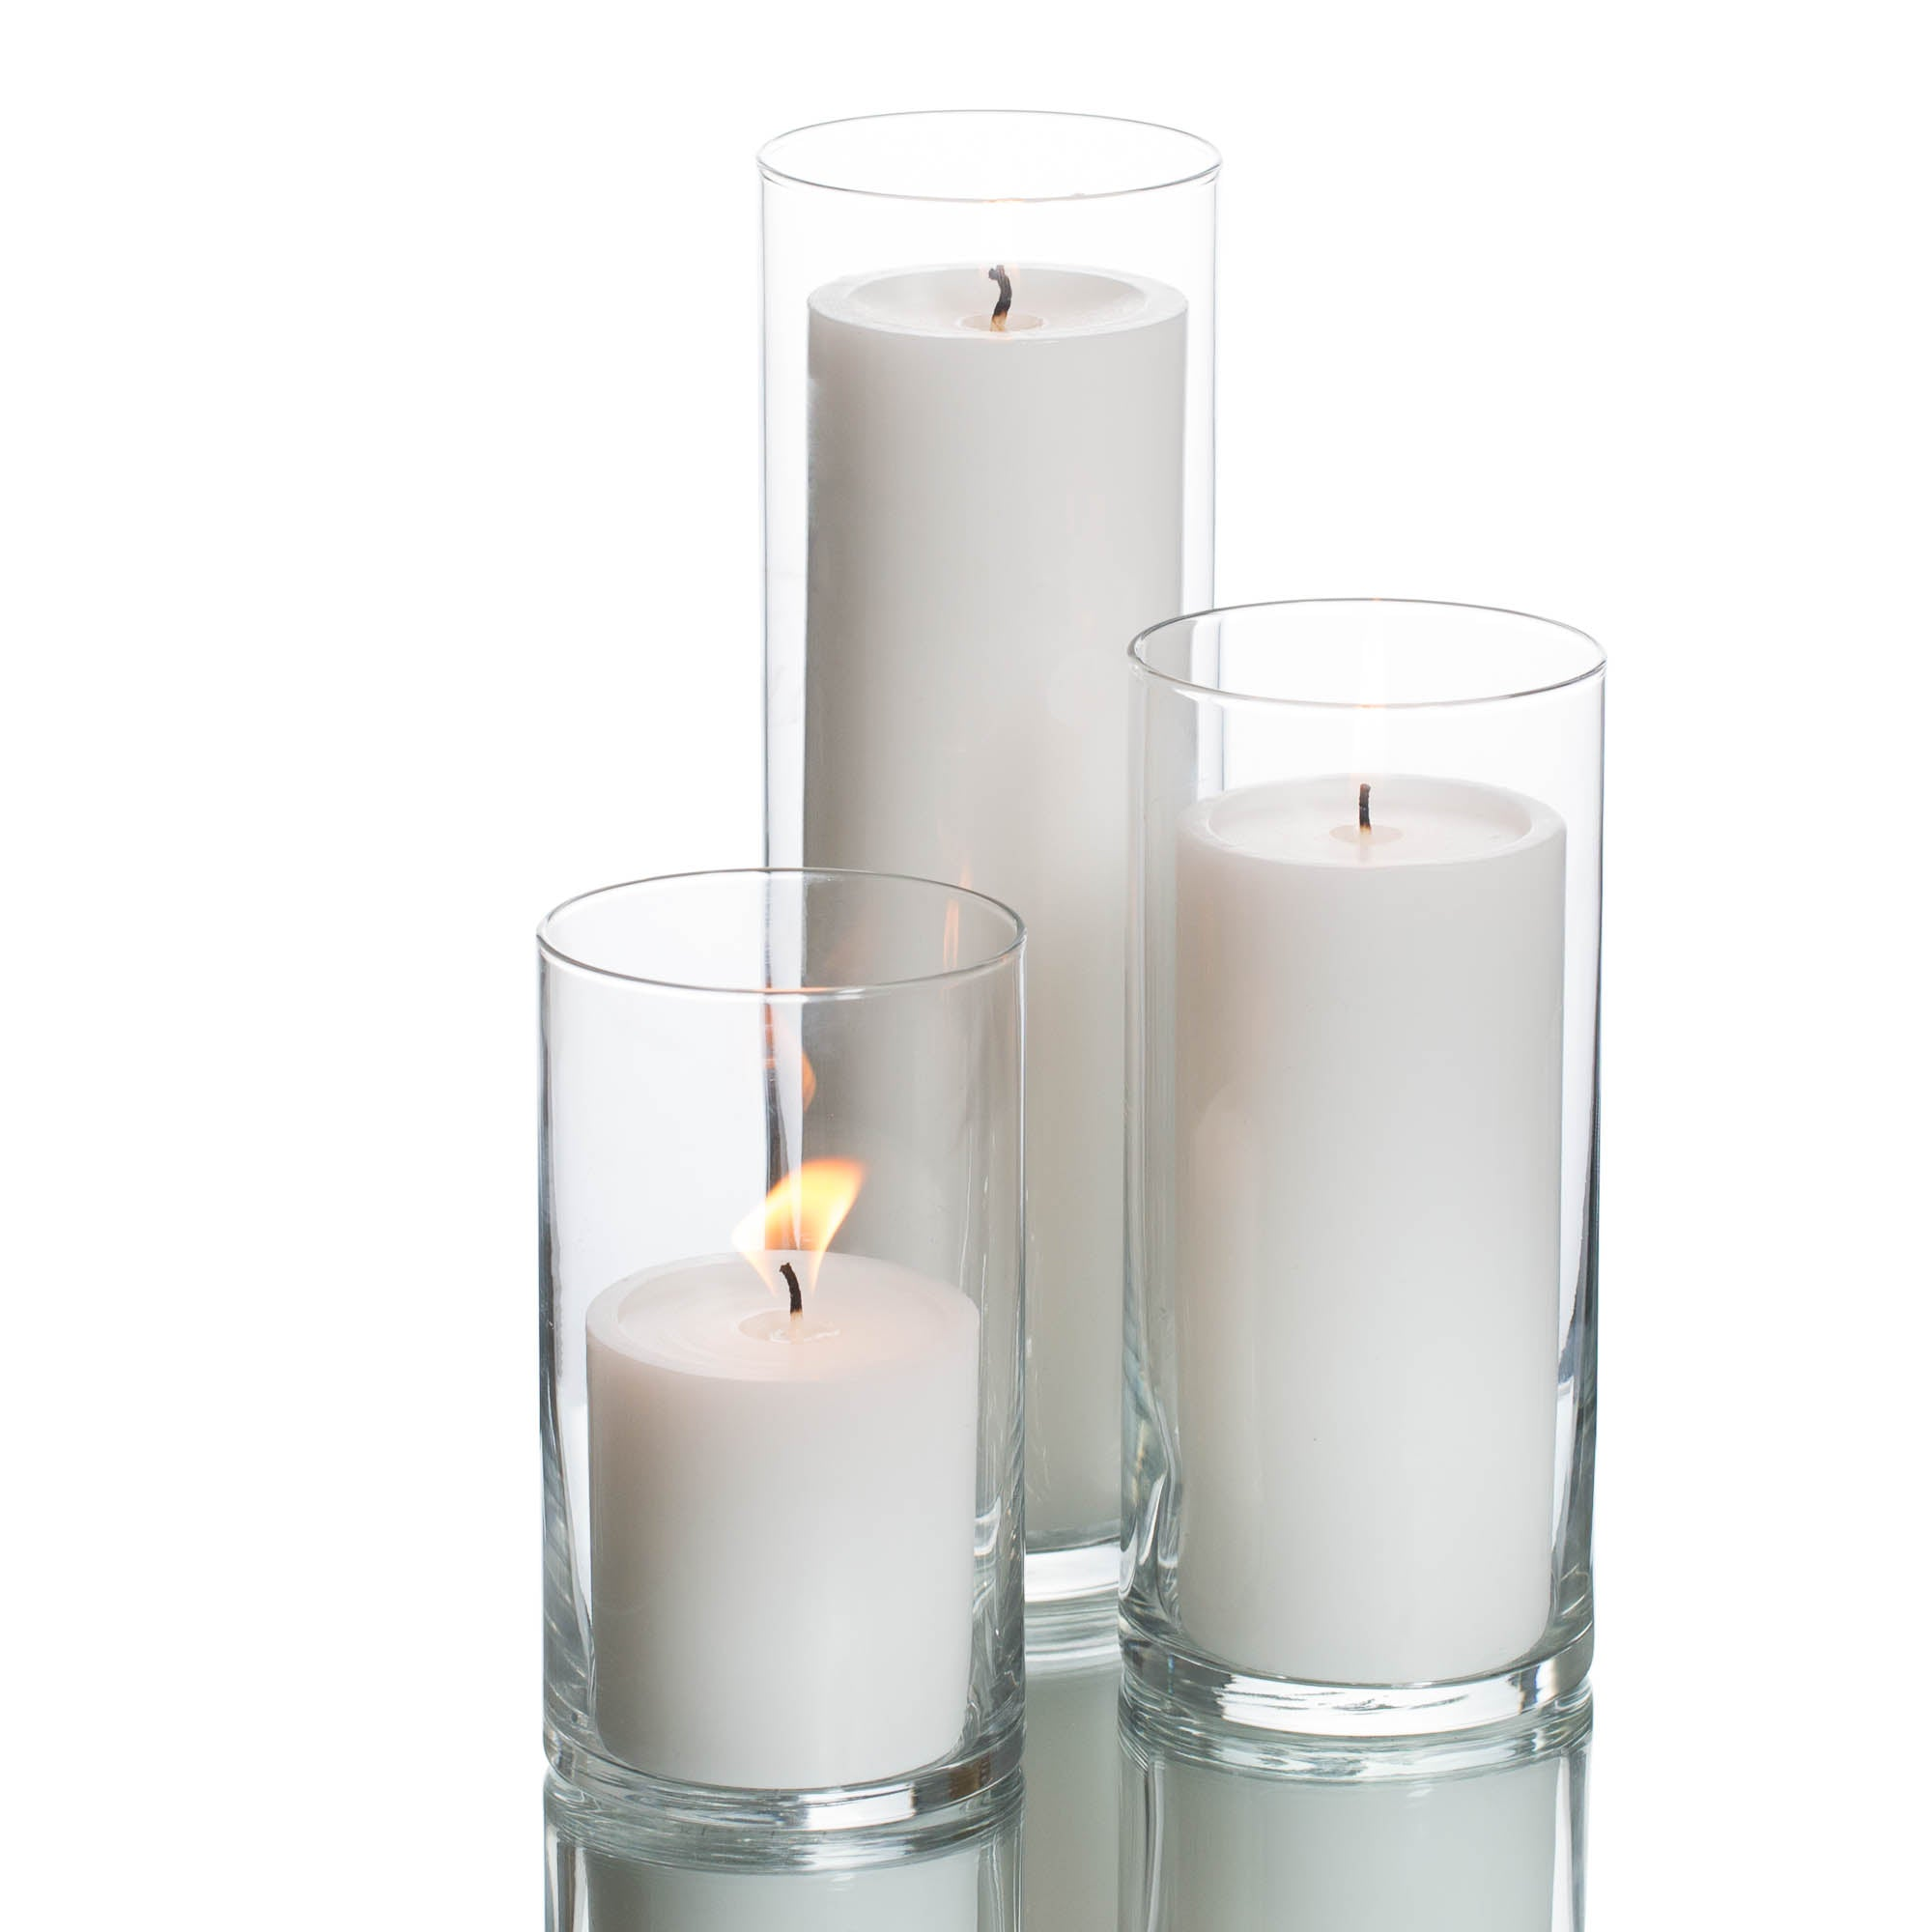 Eastland Cylinder Vases & Richland Pillar Candles Set of 3